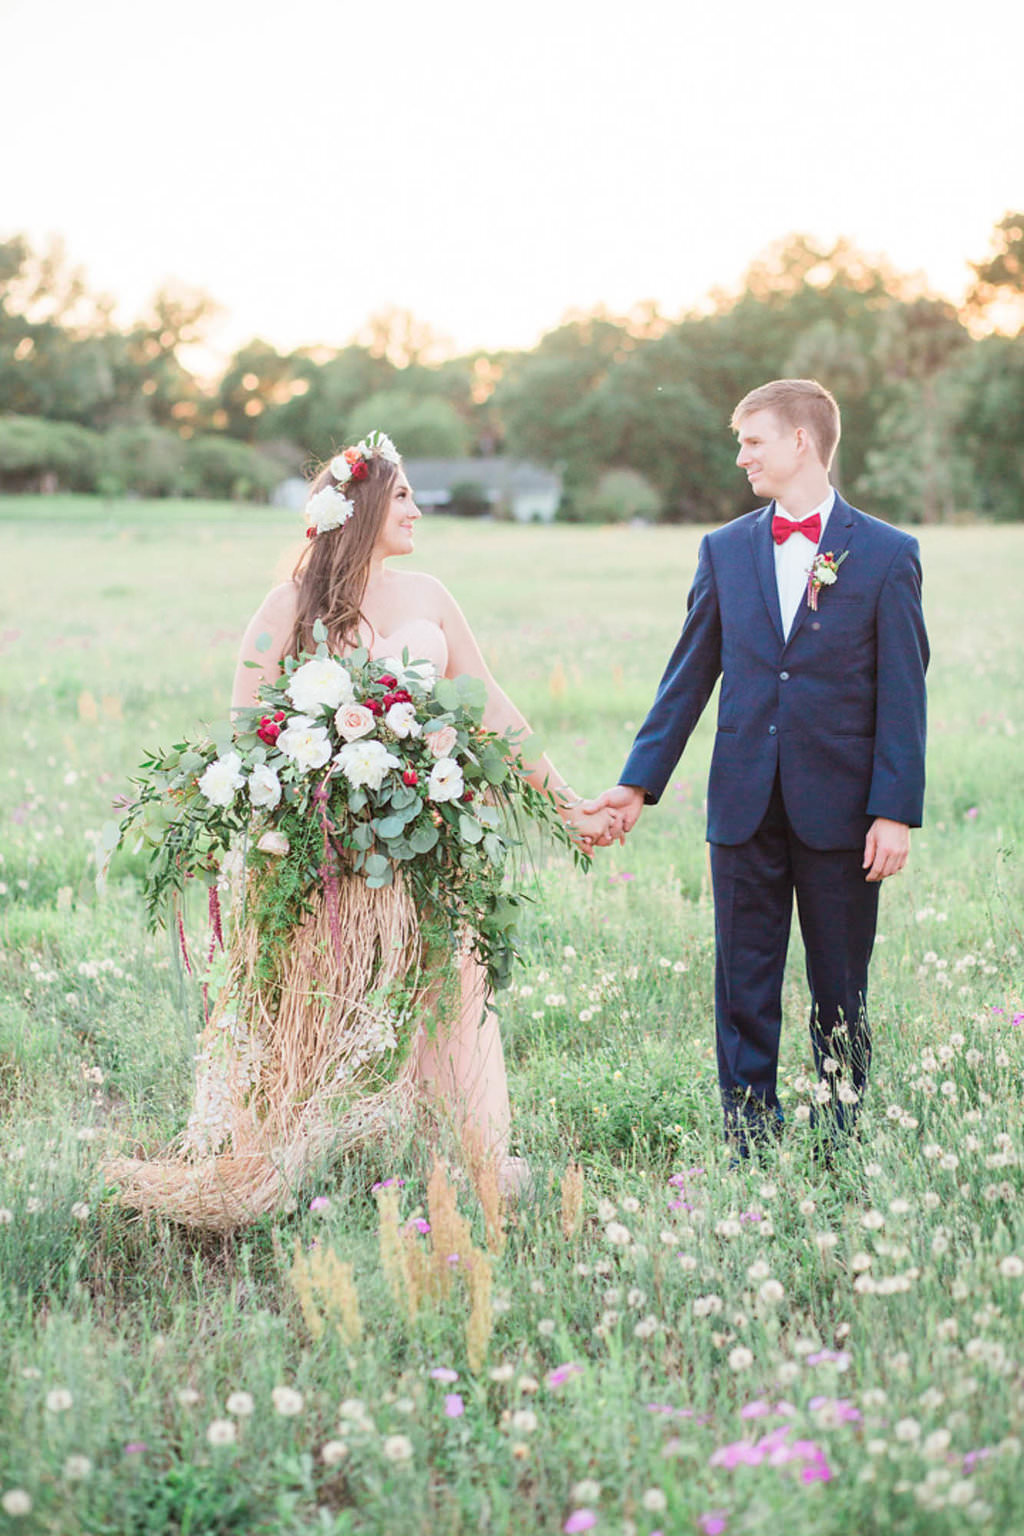 Boho Bride with Flower Crown, Oversized White and Red Bouquet and Blush Pink Wedding Dress   Outdoor Whimsical Garden Wedding Inspiration